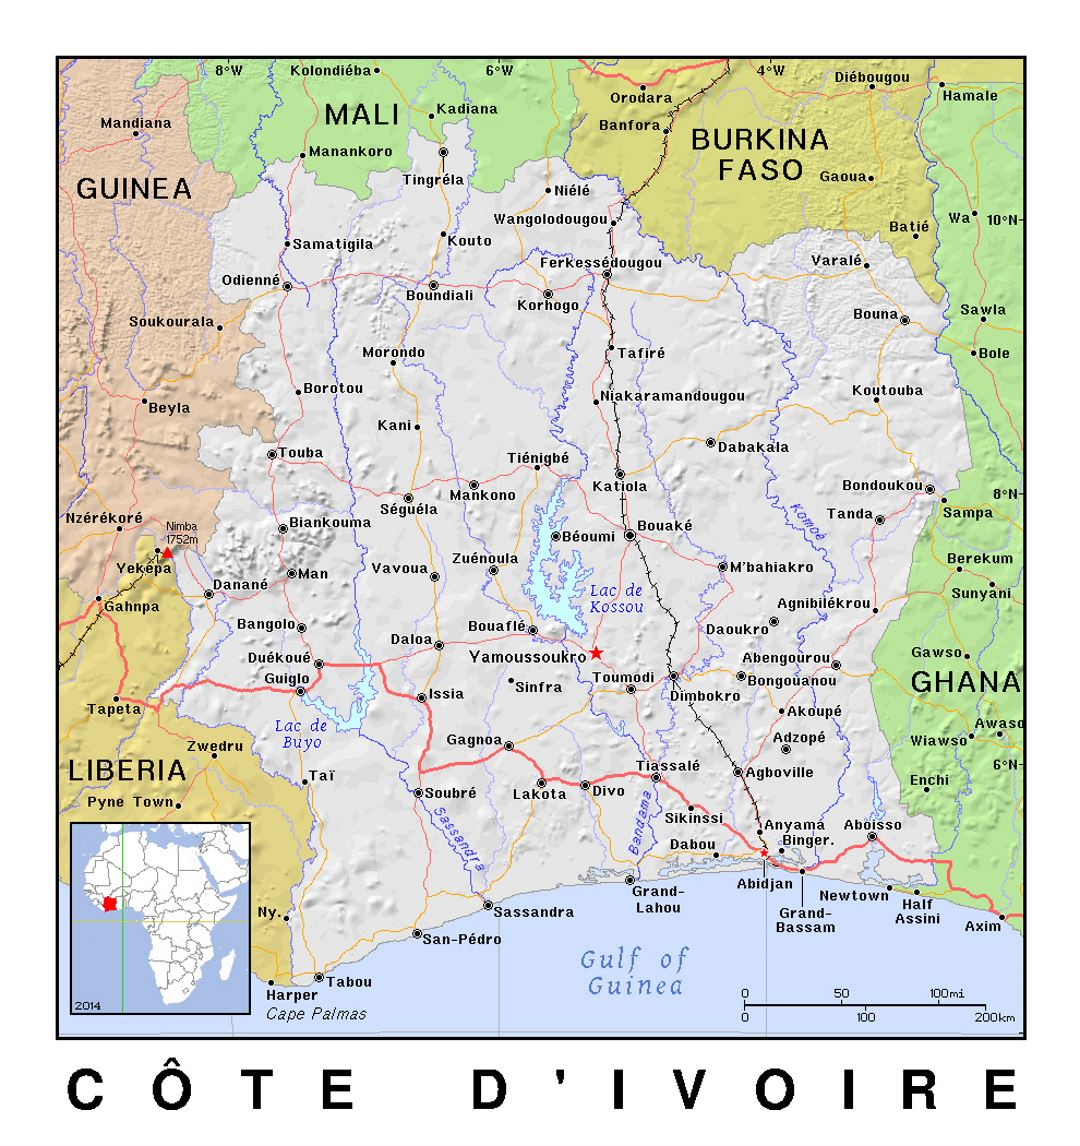 Detailed political map of Cote d'Ivoire with relief